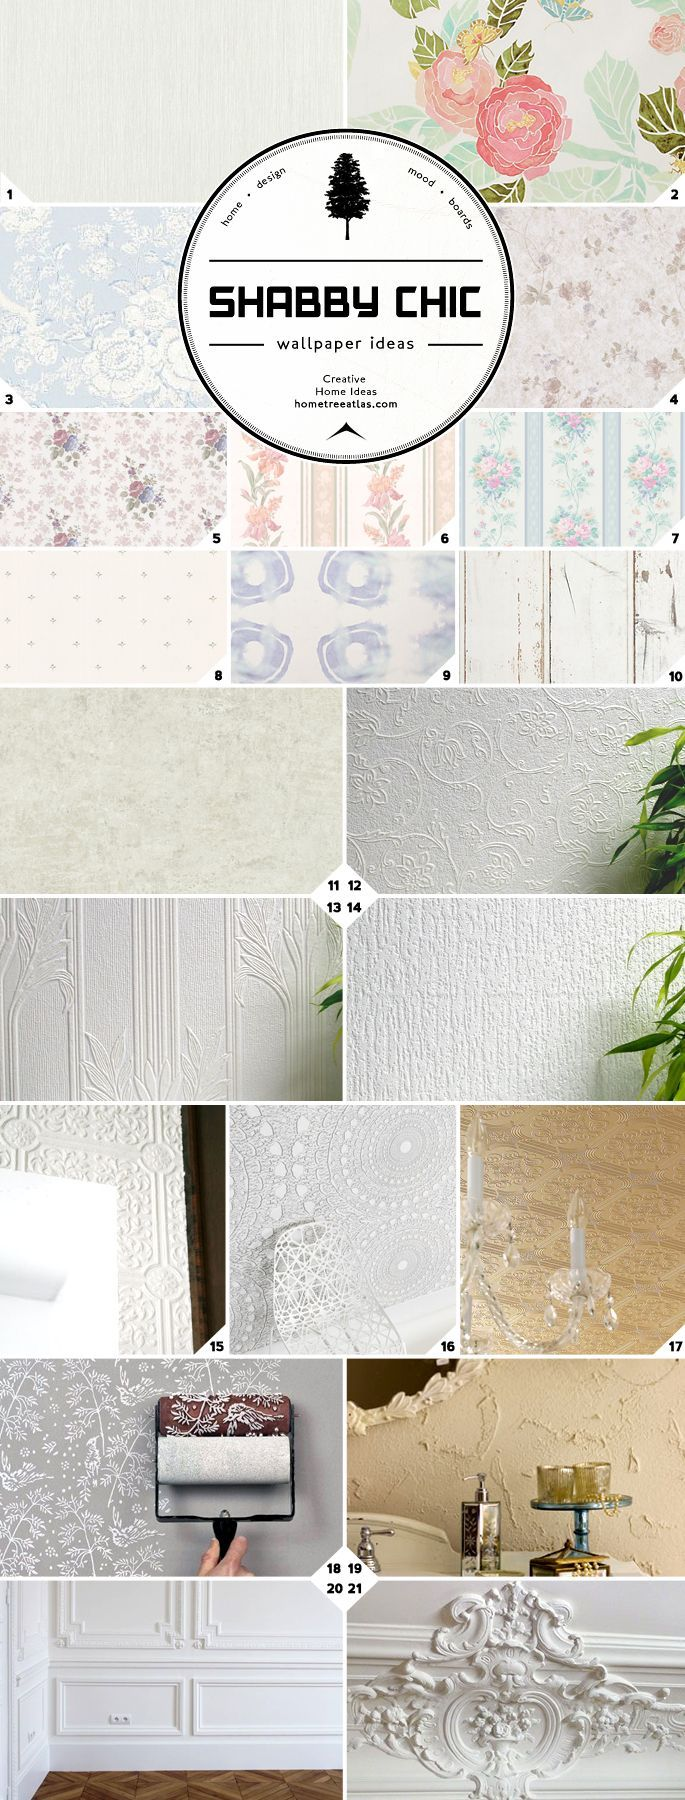 Most of the shabby chic wallpaper designs and ideas in the mood board above can be bought online. You'll find links and a shopping picture guide down below. Shabby Chic Color Palette White wall are the classic shabby chic choice. So a very subtle textured white wallpaper, such as a linen texture, will look amazing […]